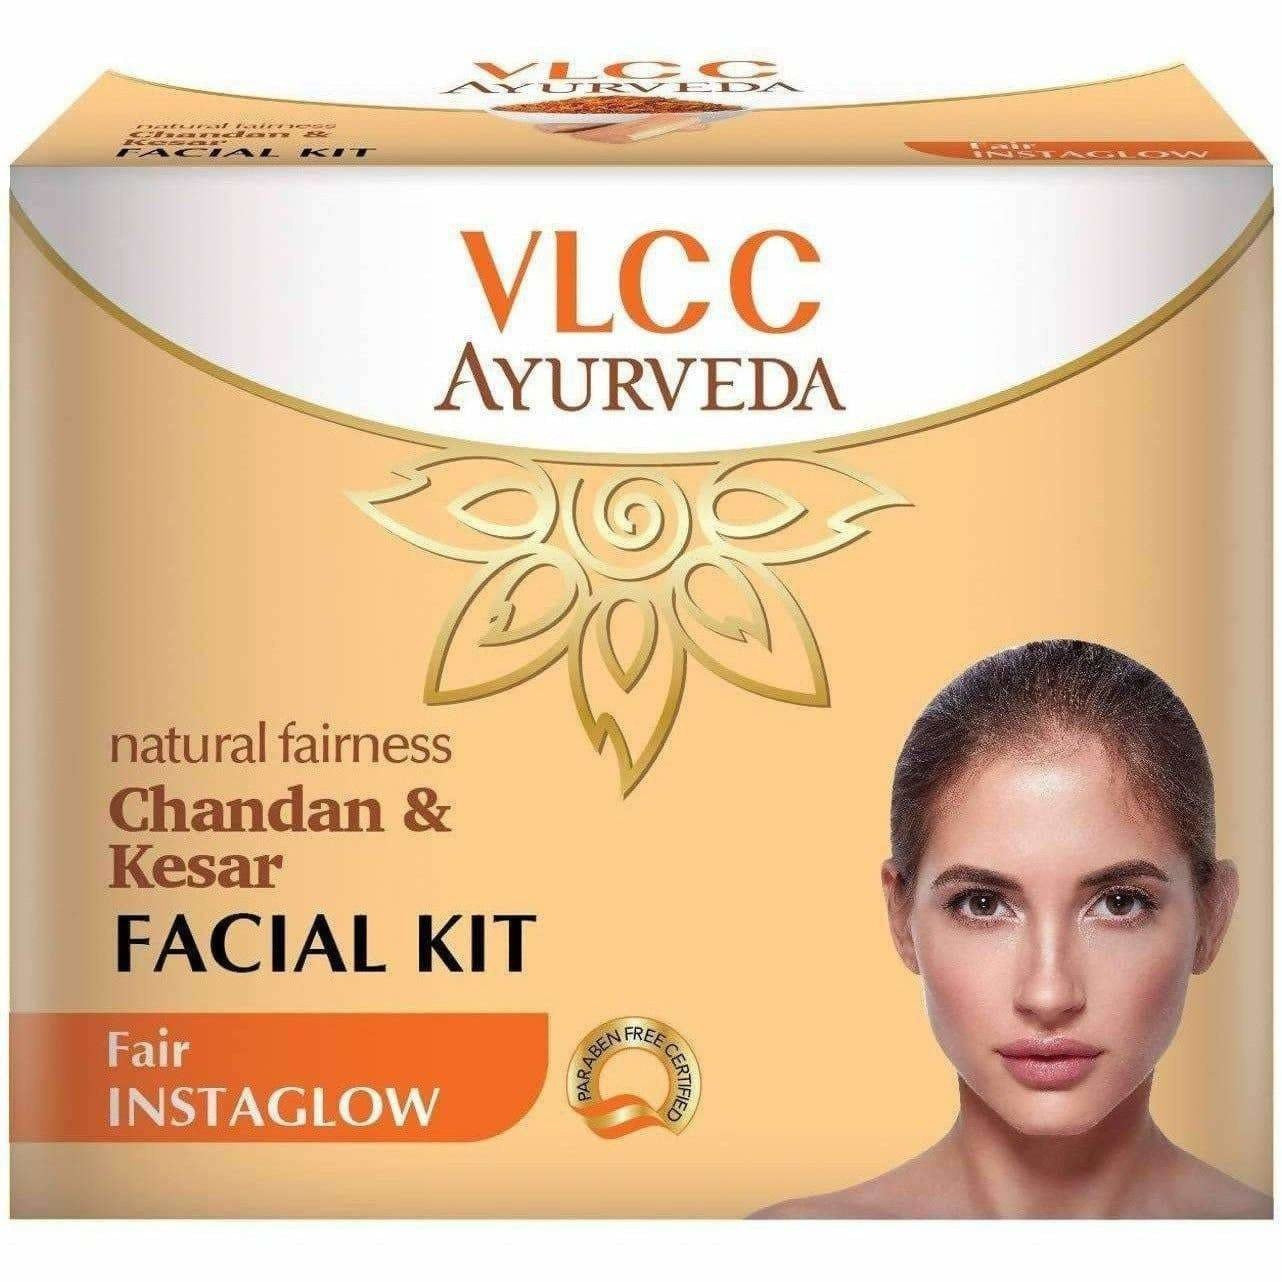 VLCC Ayurveda Natural Fairness Chandan and Kesar Facial Kit